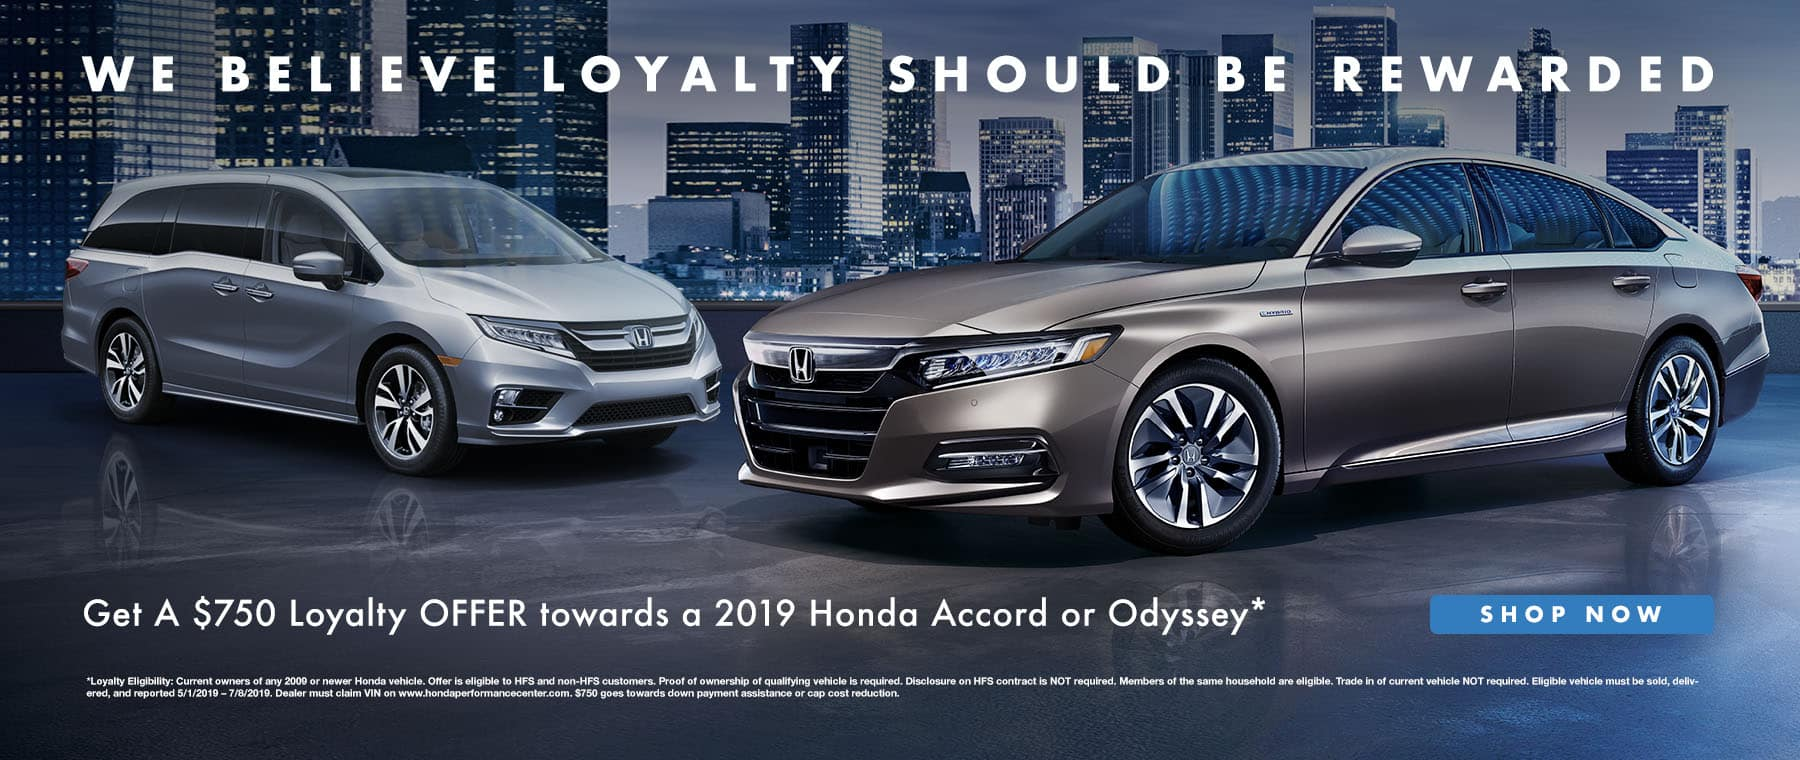 Honda Dealership Orange County >> Weir Canyon Honda Honda Dealer In Anaheim Ca